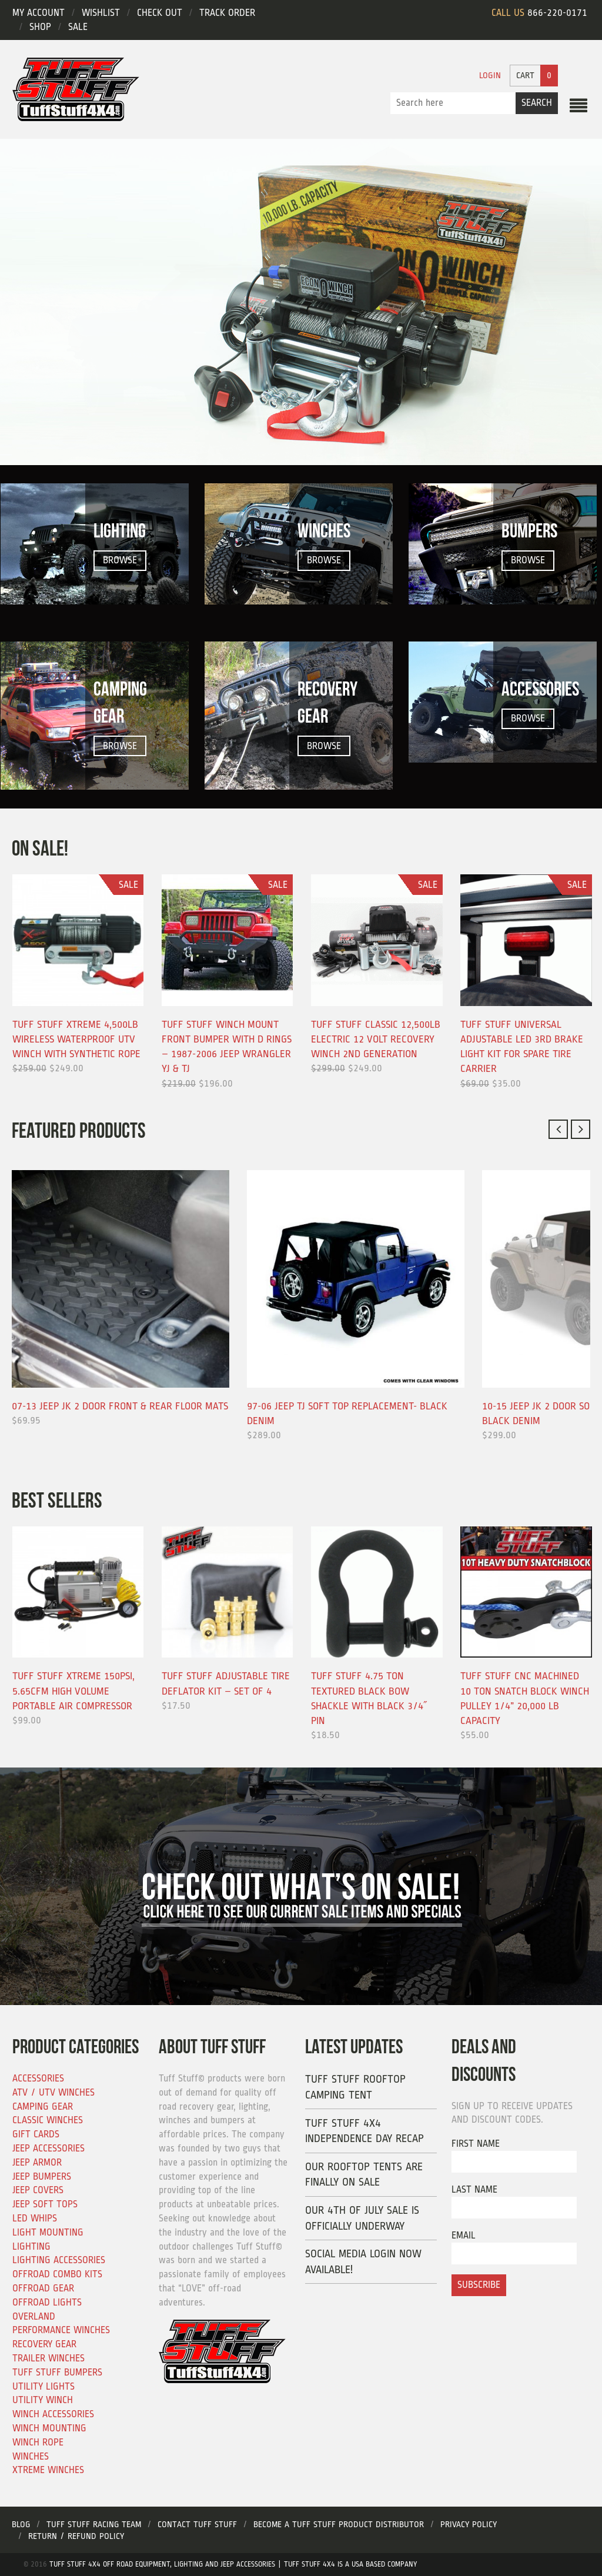 Tuffstuff4X4 Competitors, Revenue and Employees - Owler Company Profile